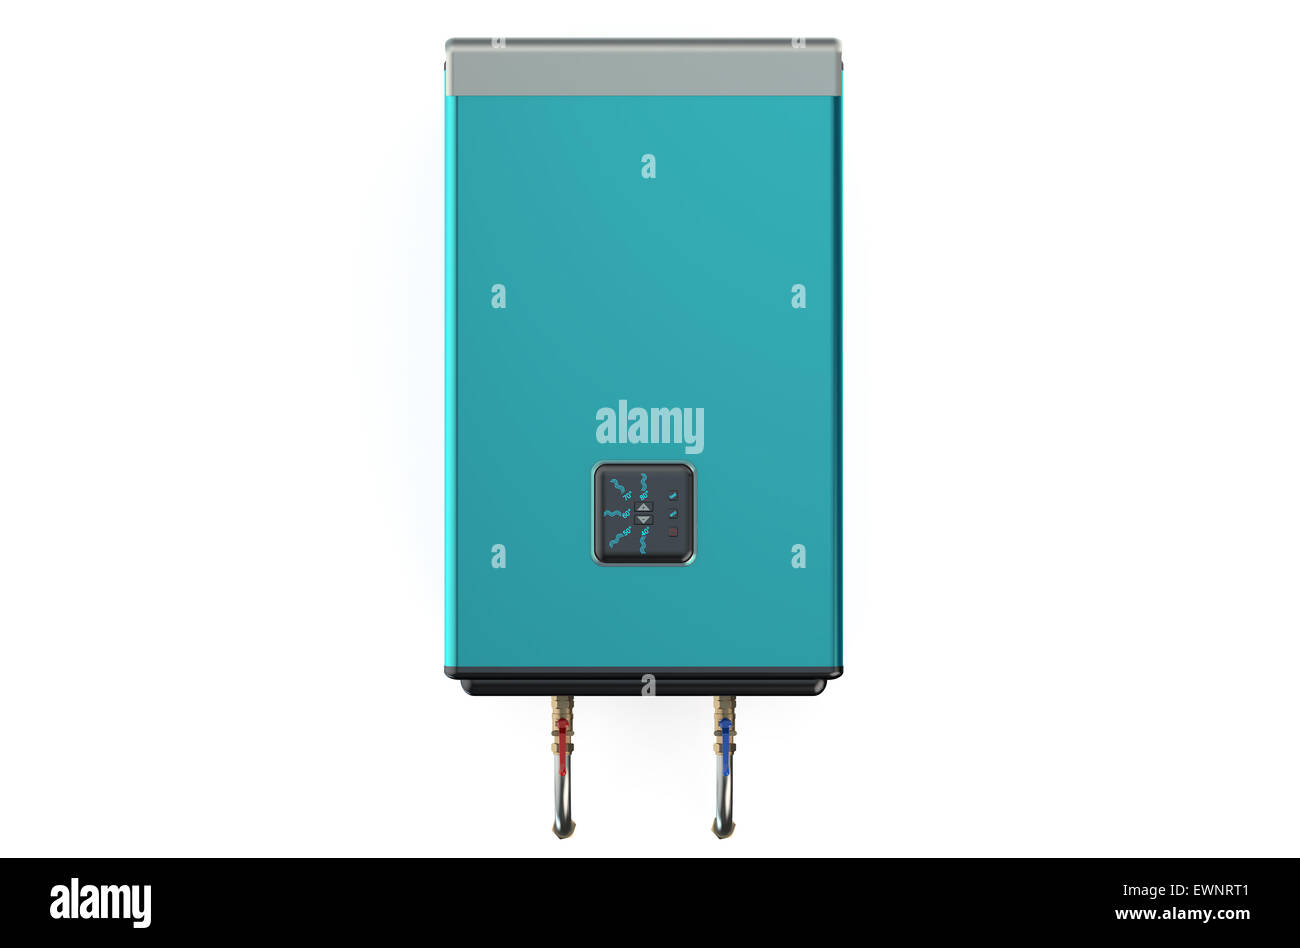 blue automatic electric water heater or boiler isolated on white ...